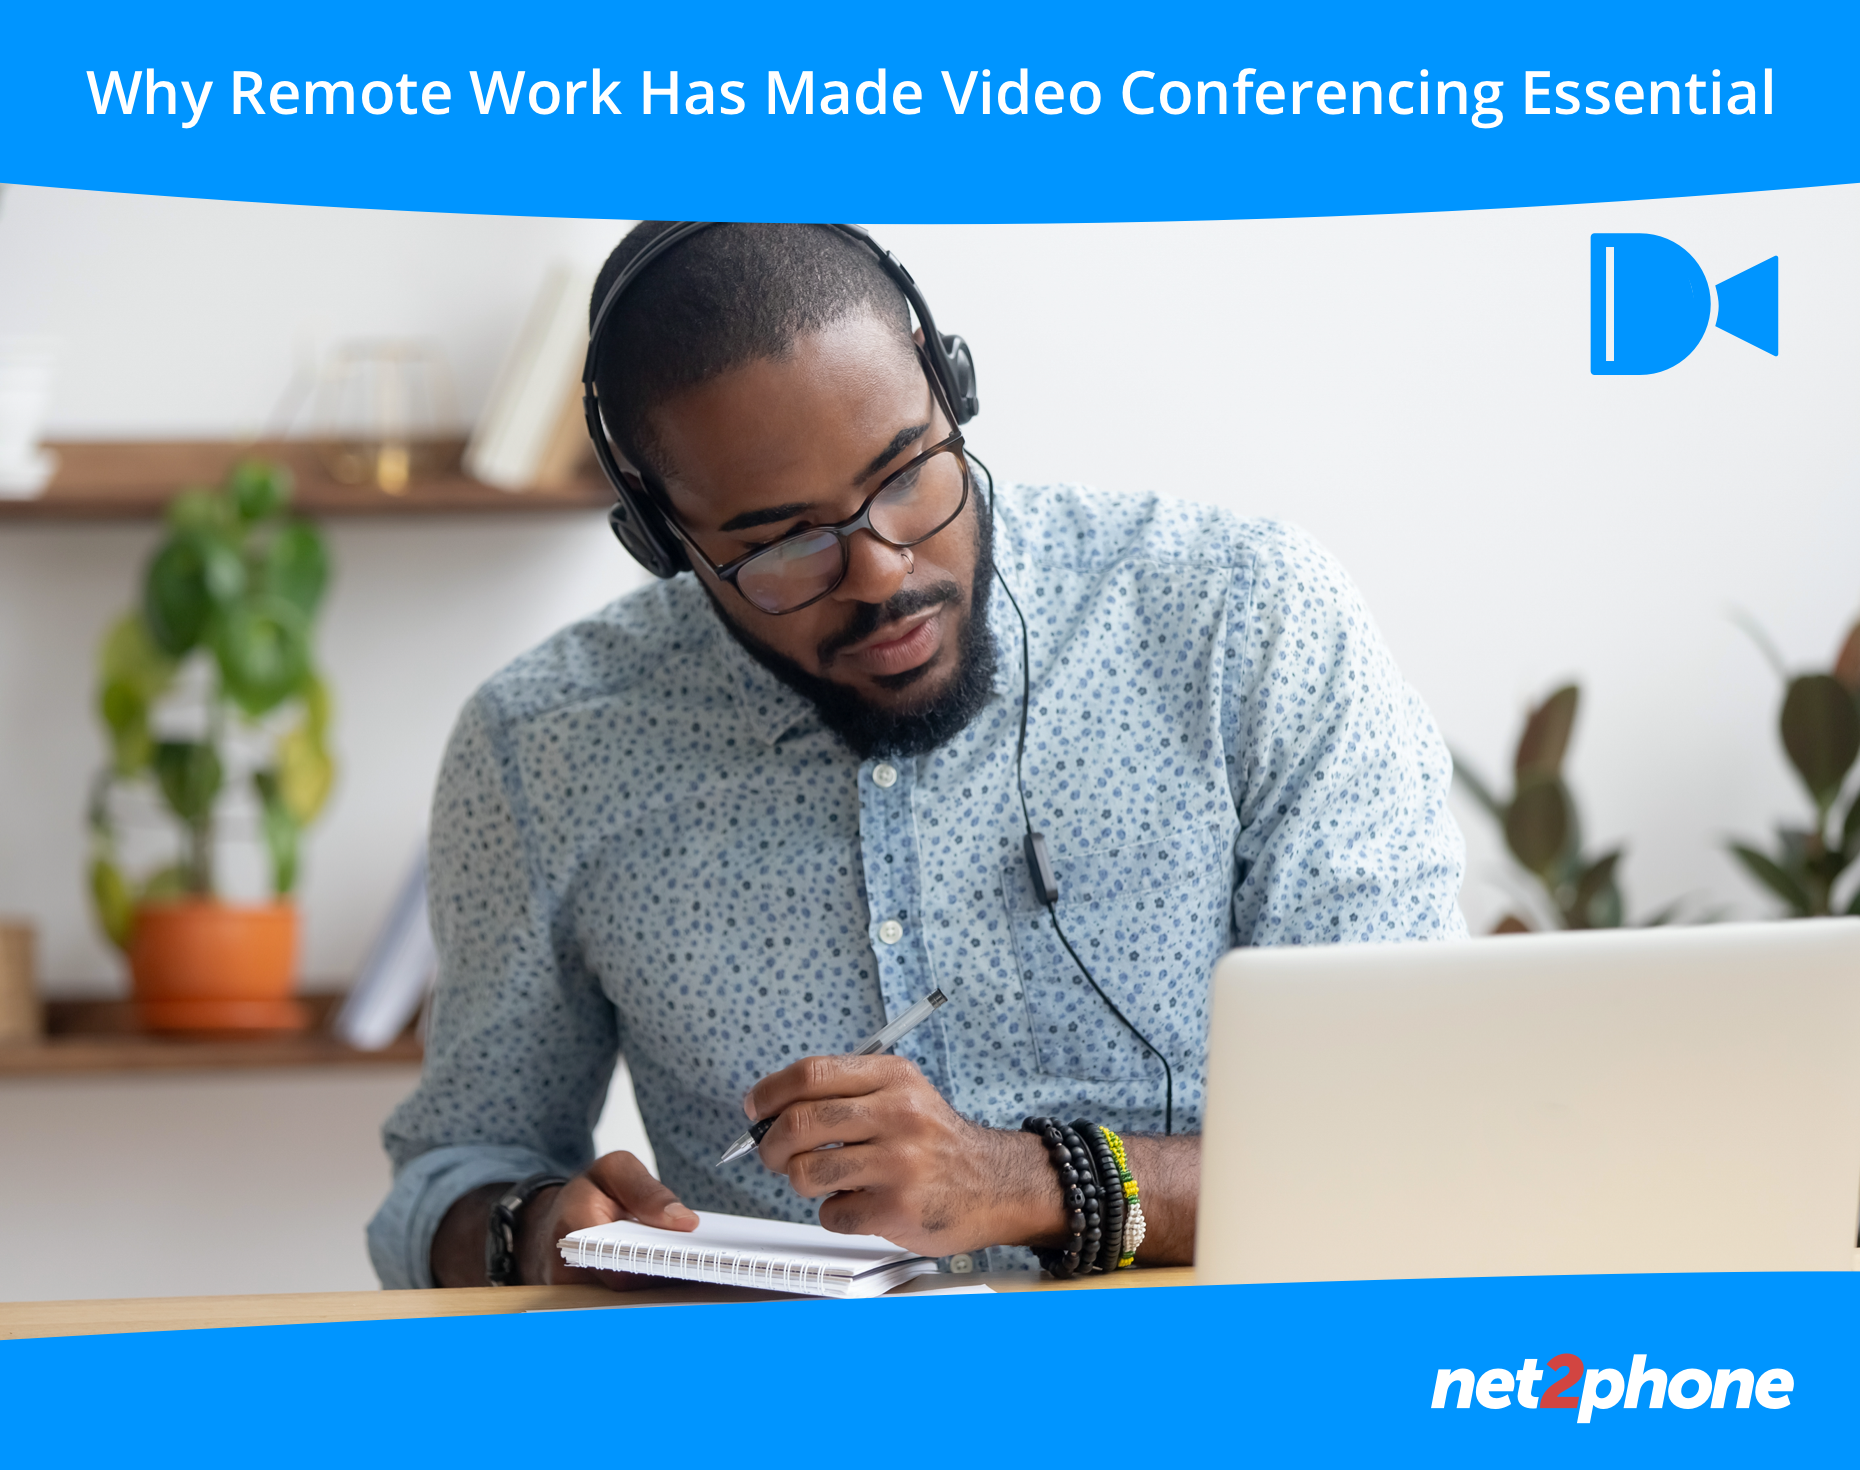 Video conferencing is essential